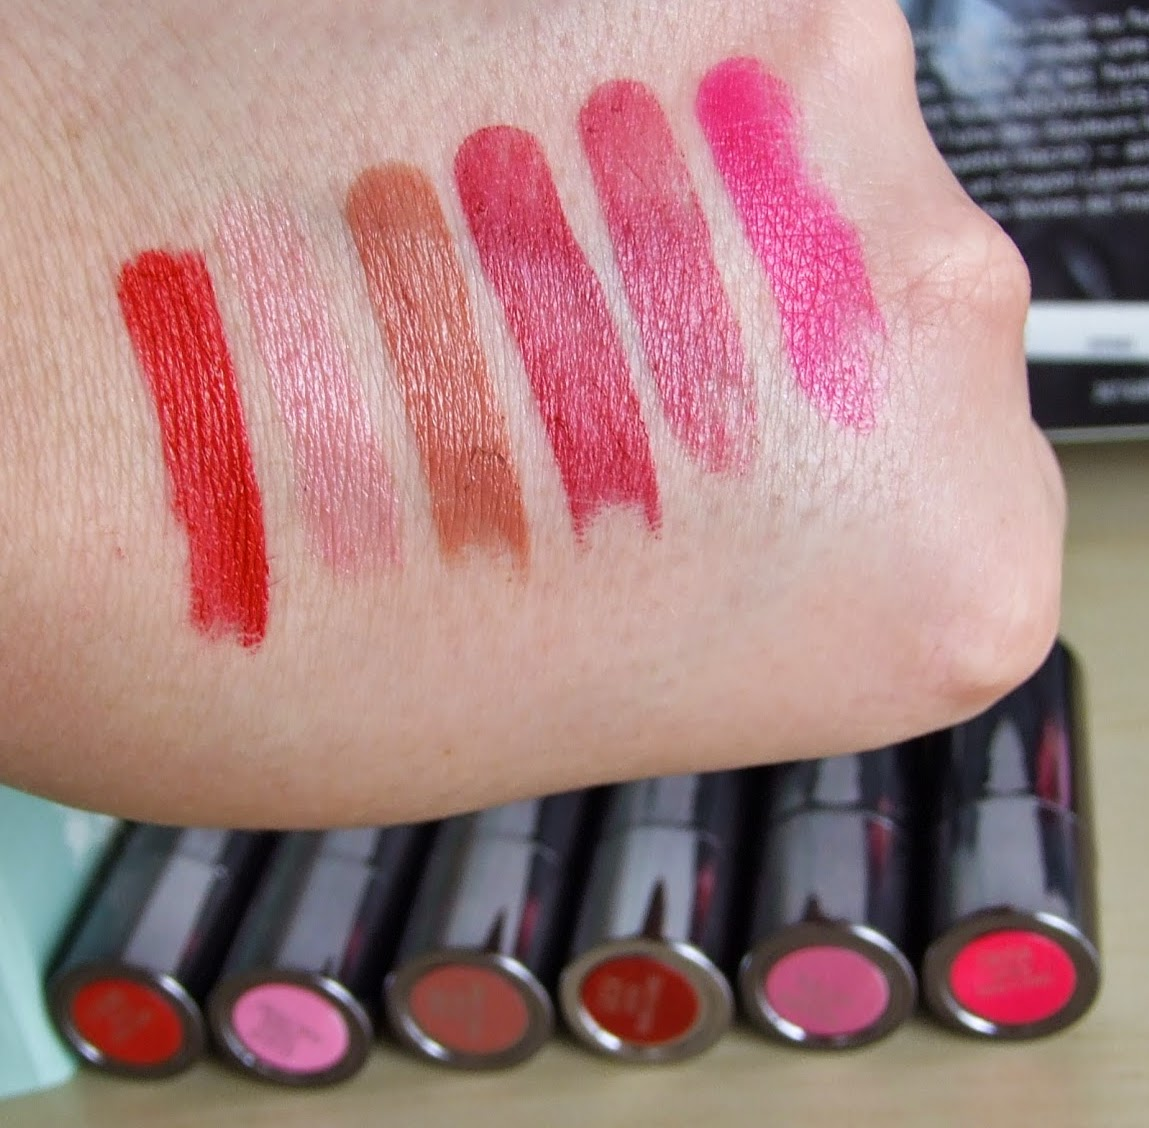 F-Bomb, Illicit, Liar, Gash, Ladyflower, Crush Urban decay revolution lipstick swatches review